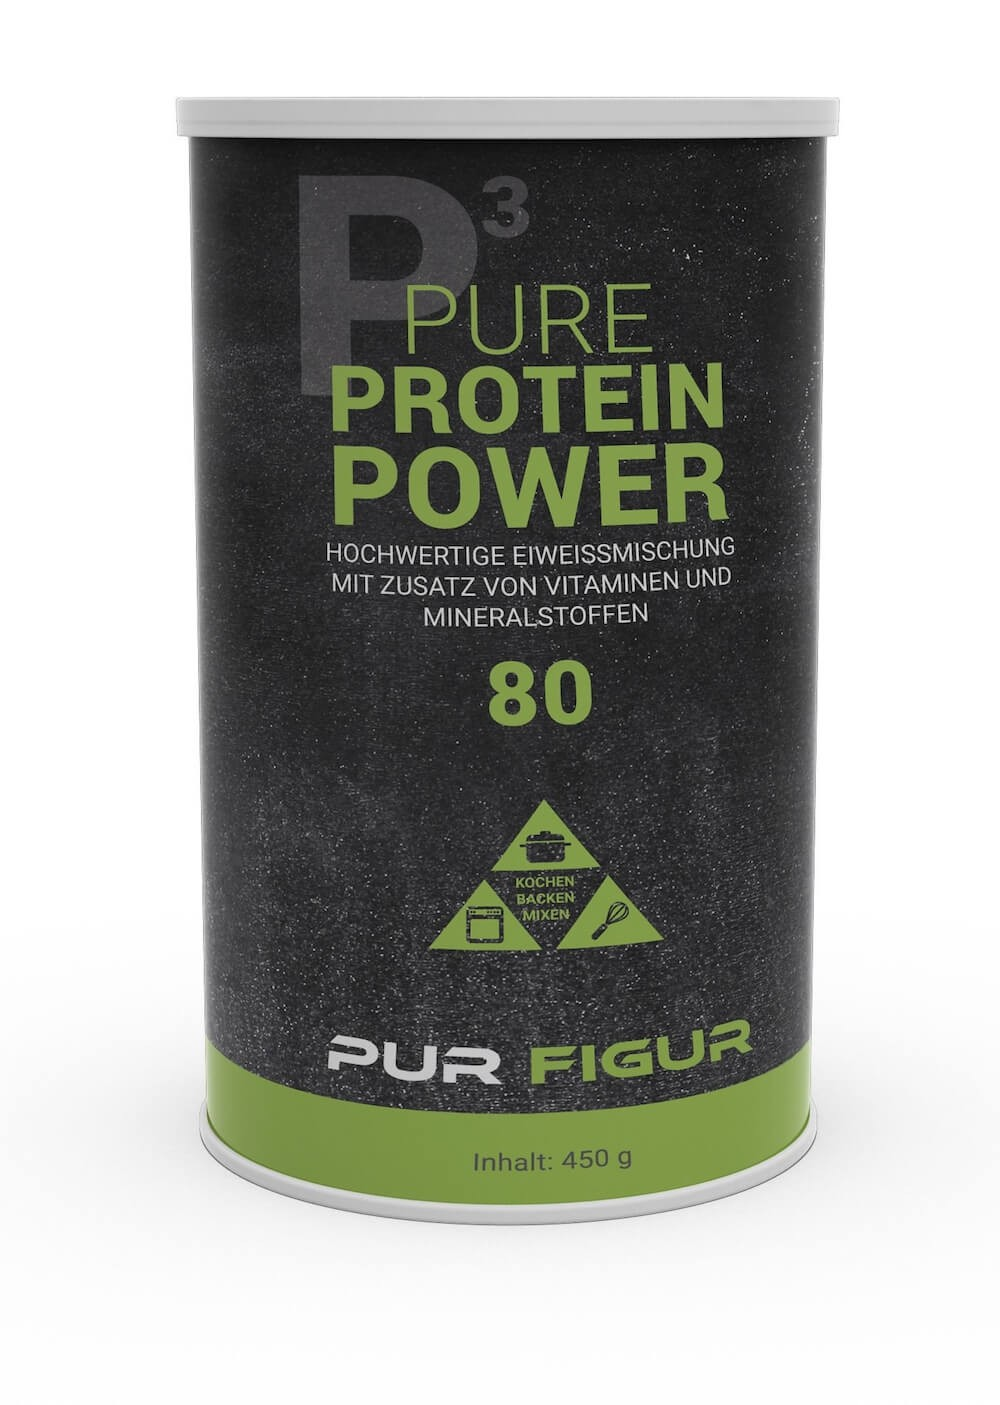 Pure Protein Power